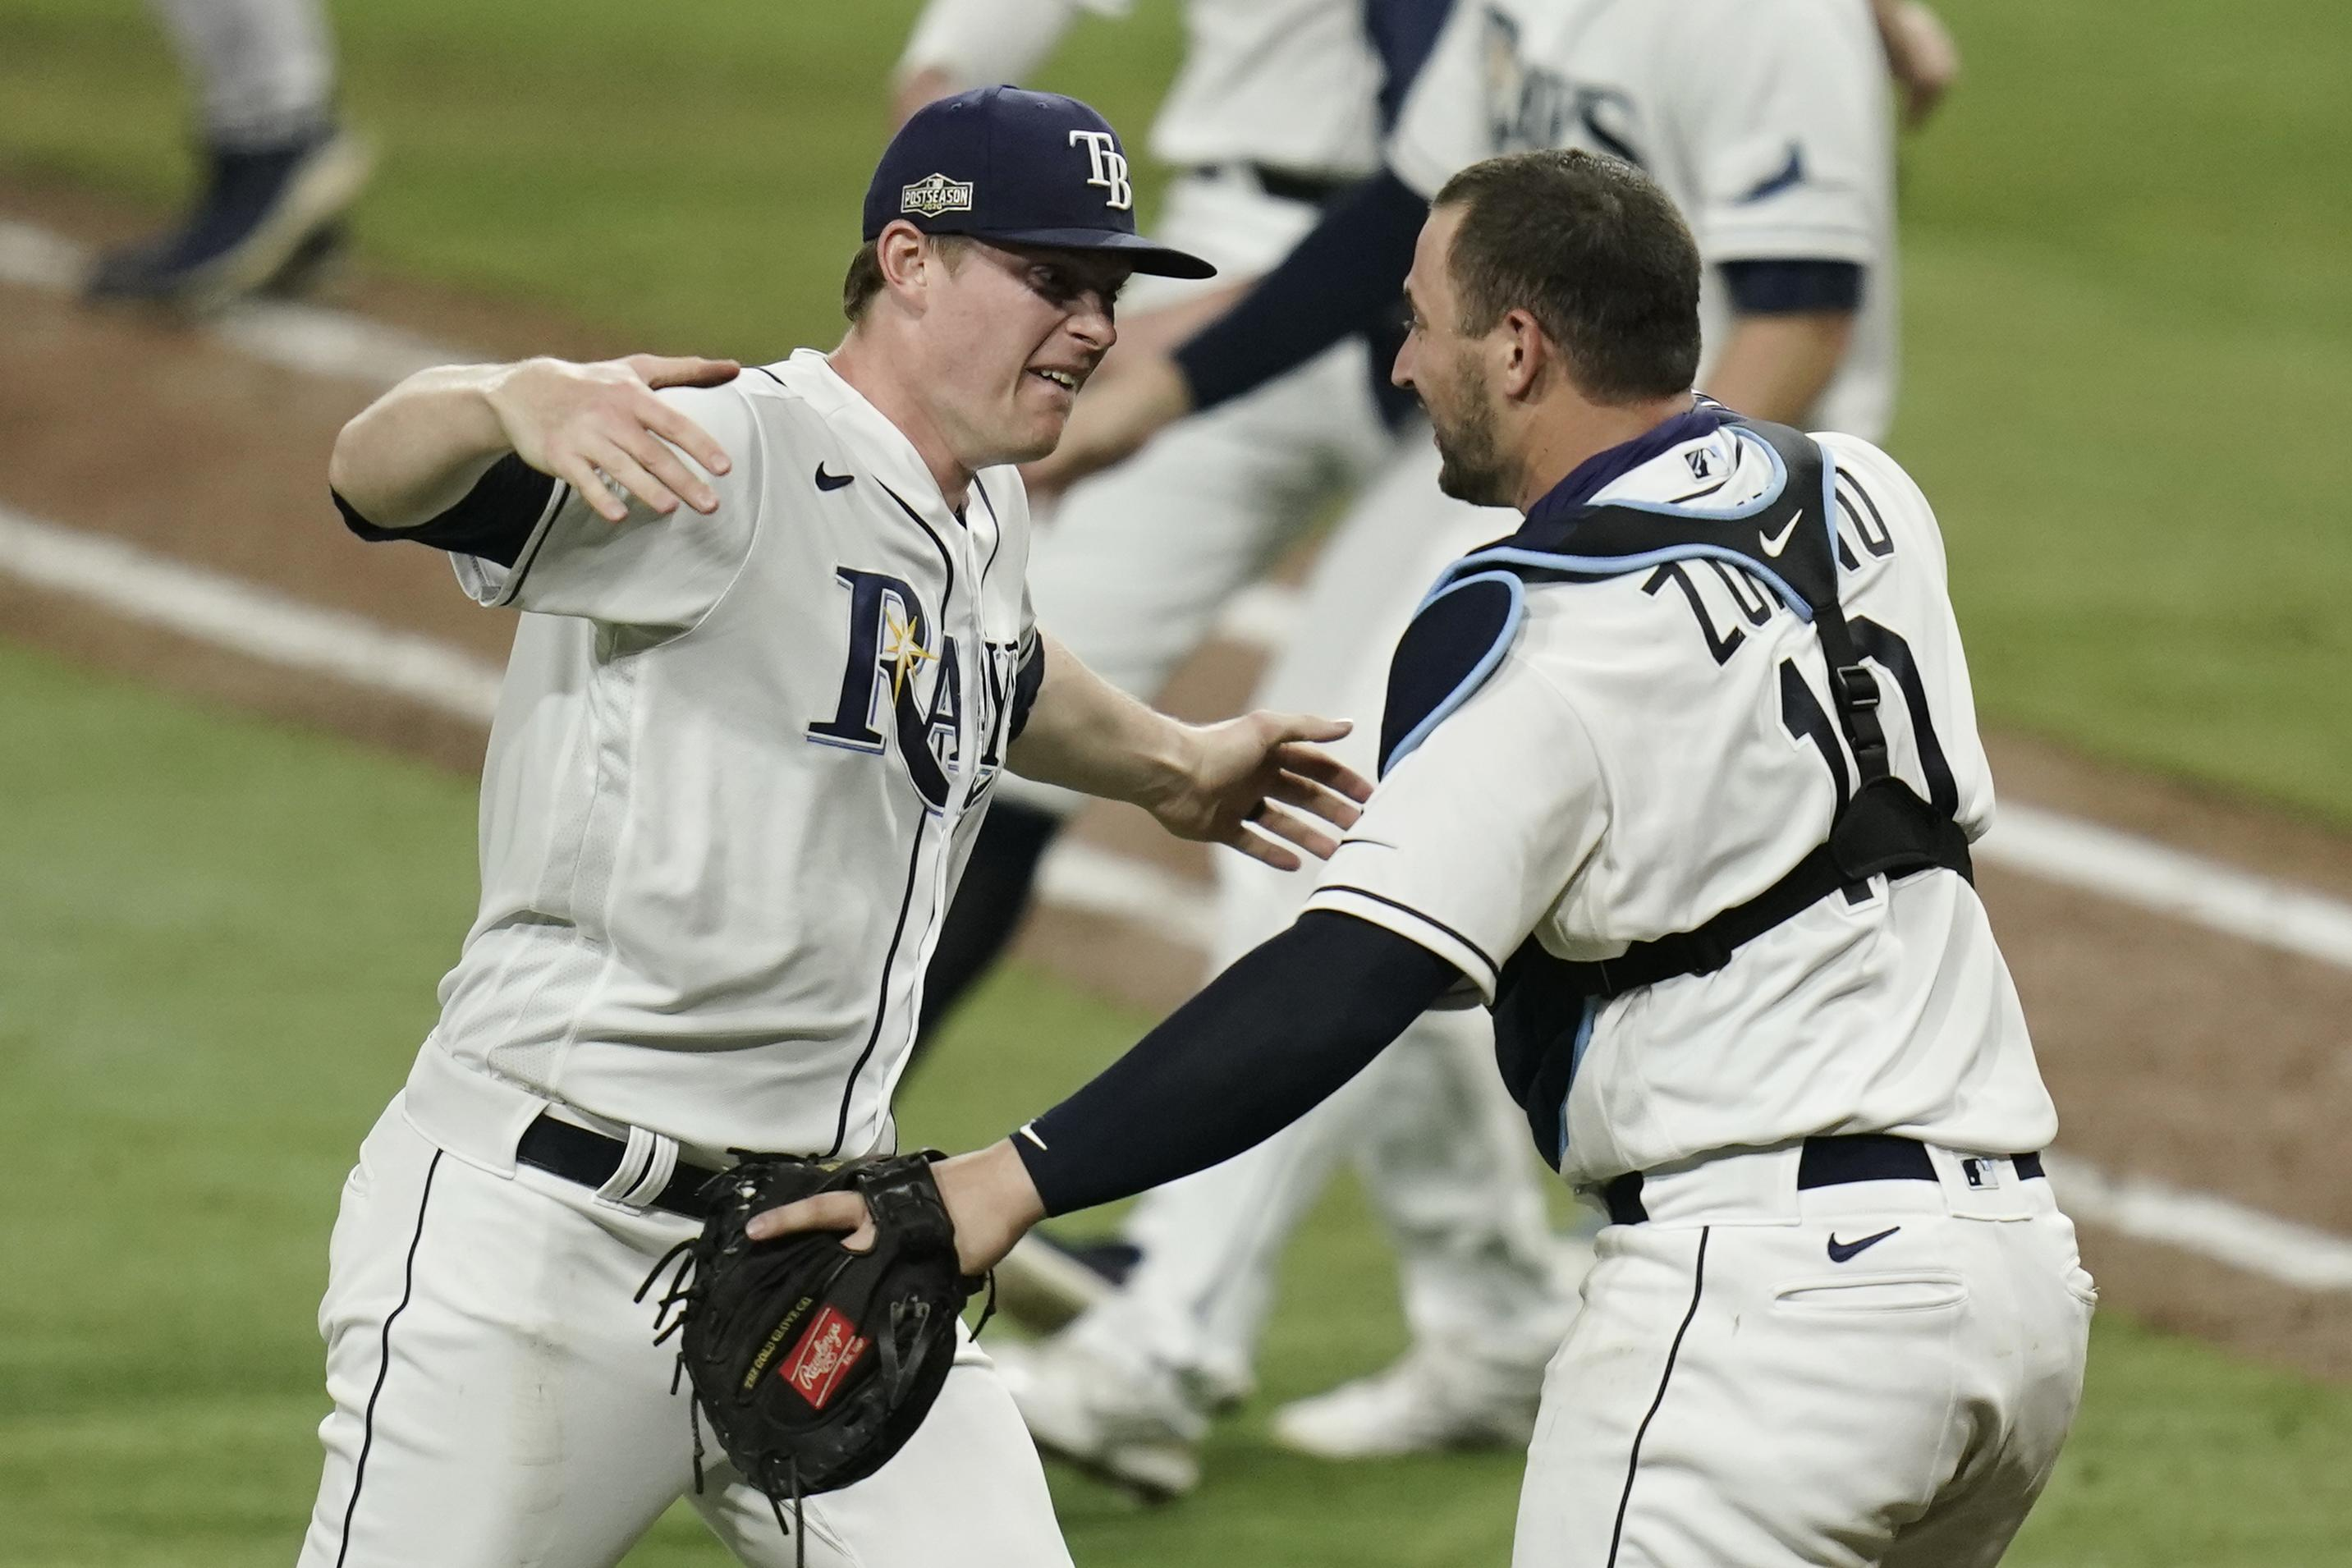 World Series 2020 Bracket: Complete Schedule for Rays vs ...